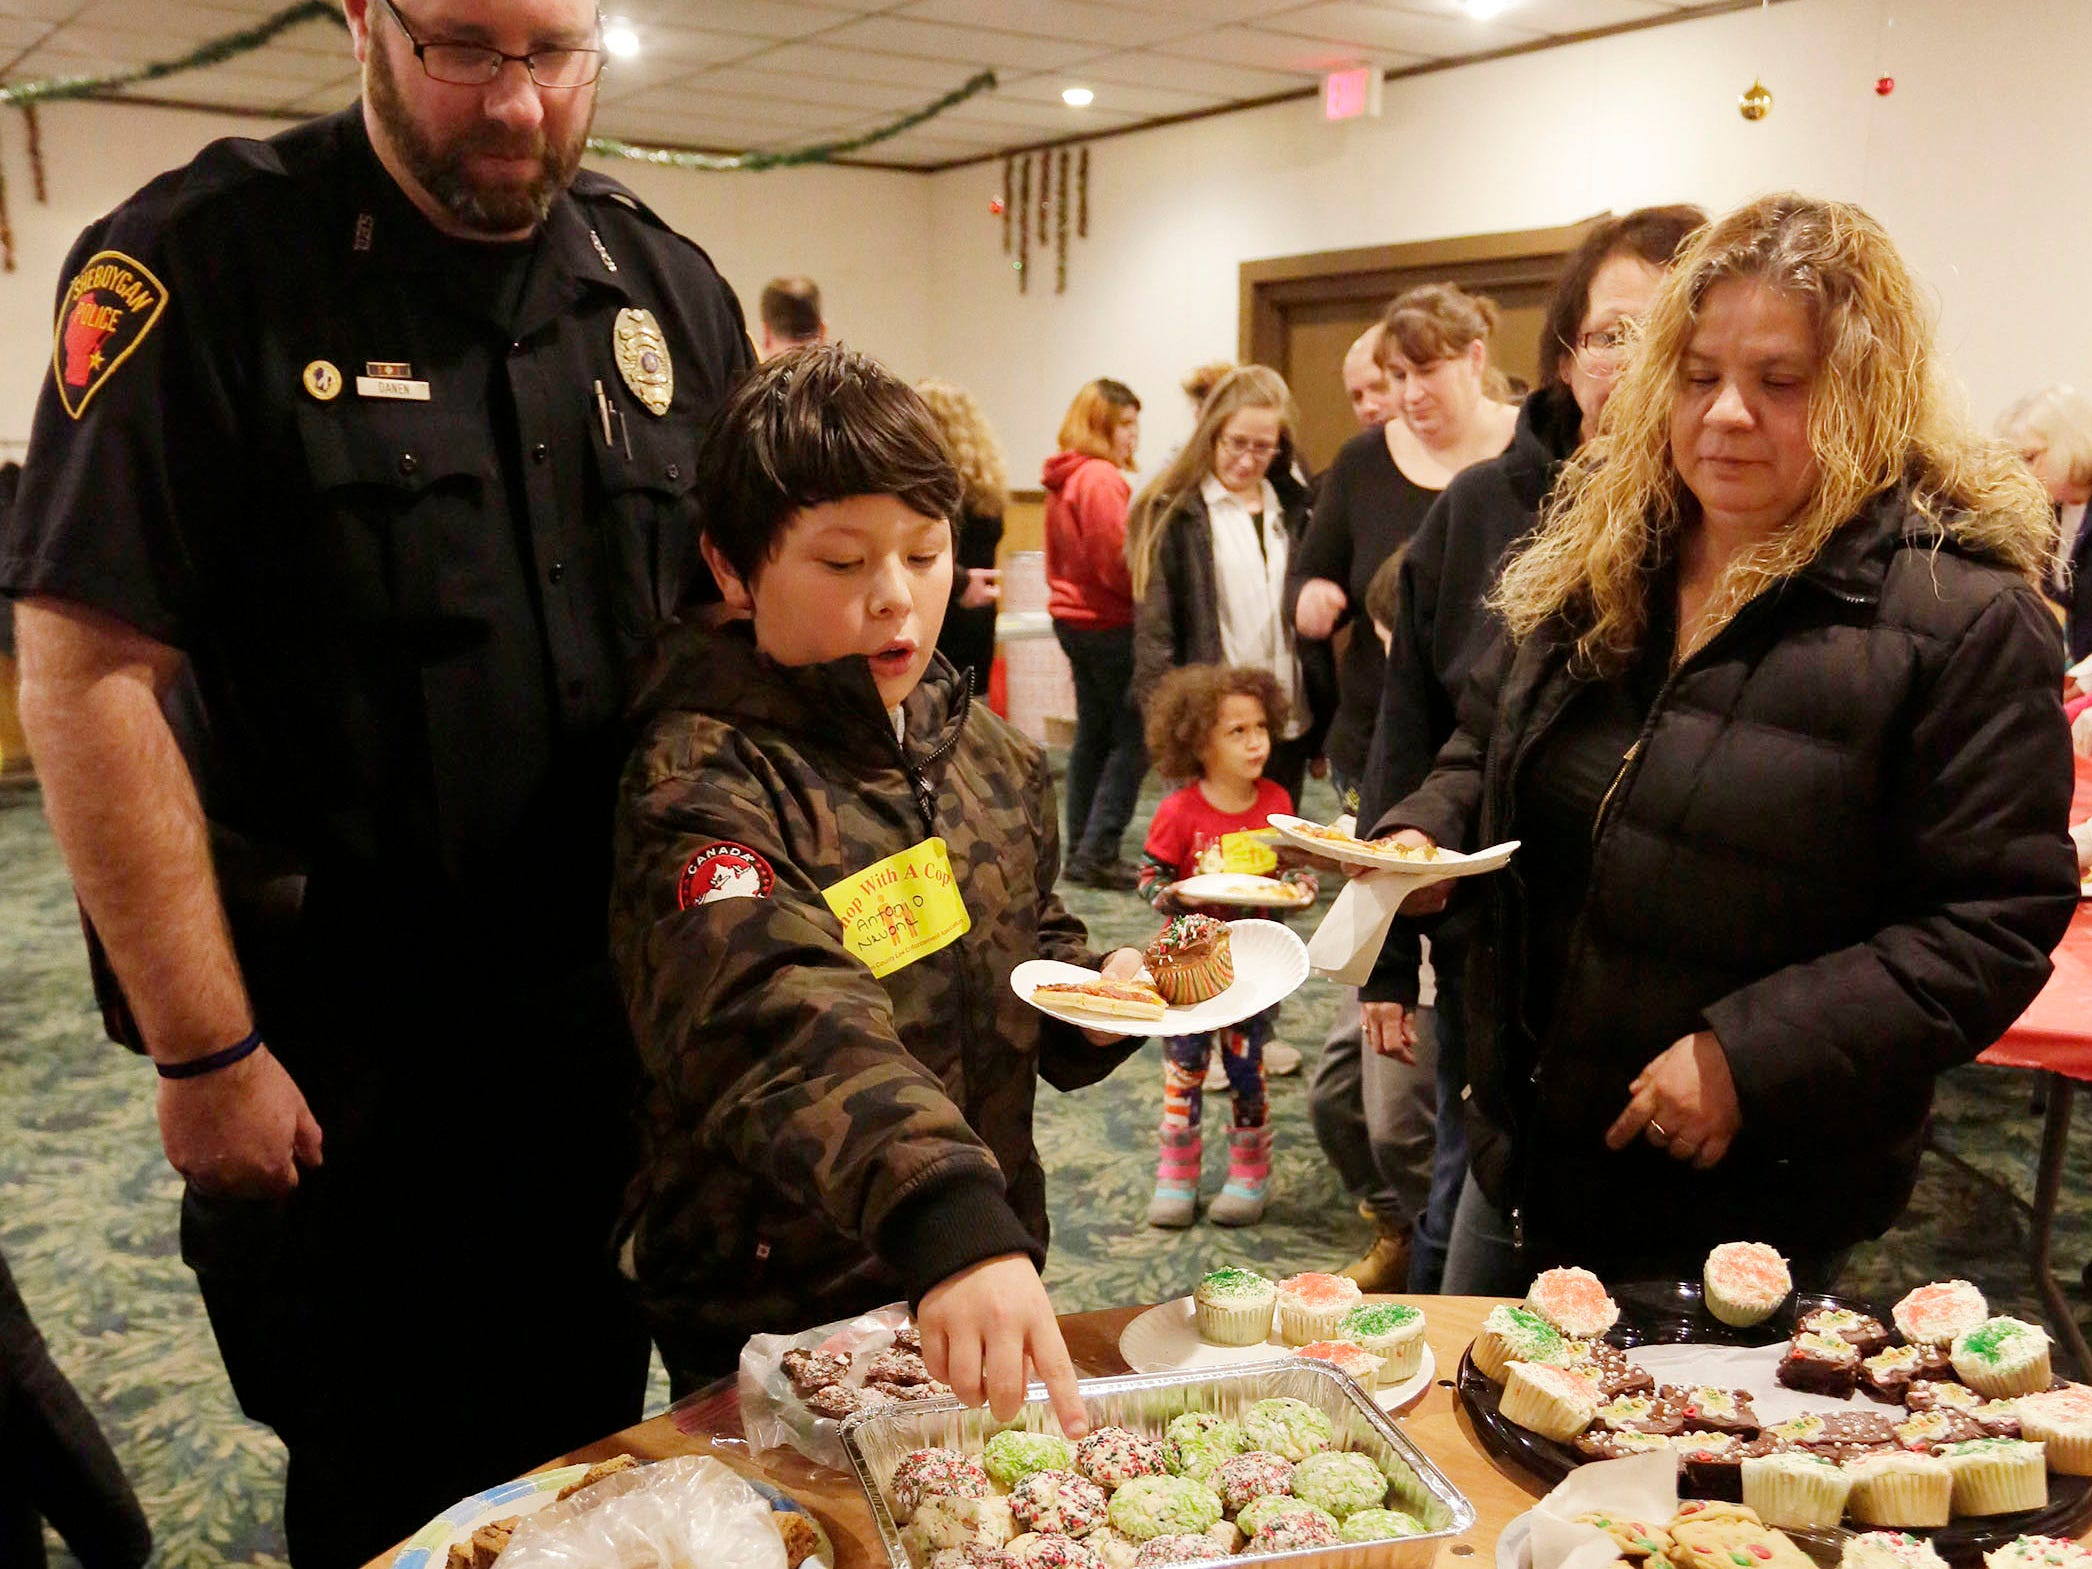 Children and officers had many different types of cookies and holiday treats to eat at Lakeshore Lanes before Shop with Cop, Tuesday, December 4, 2018, in Sheboygan, Wis. The program, in its 21st year, raises funds to give children a chance to buy holiday gifts that they otherwise might not receive.